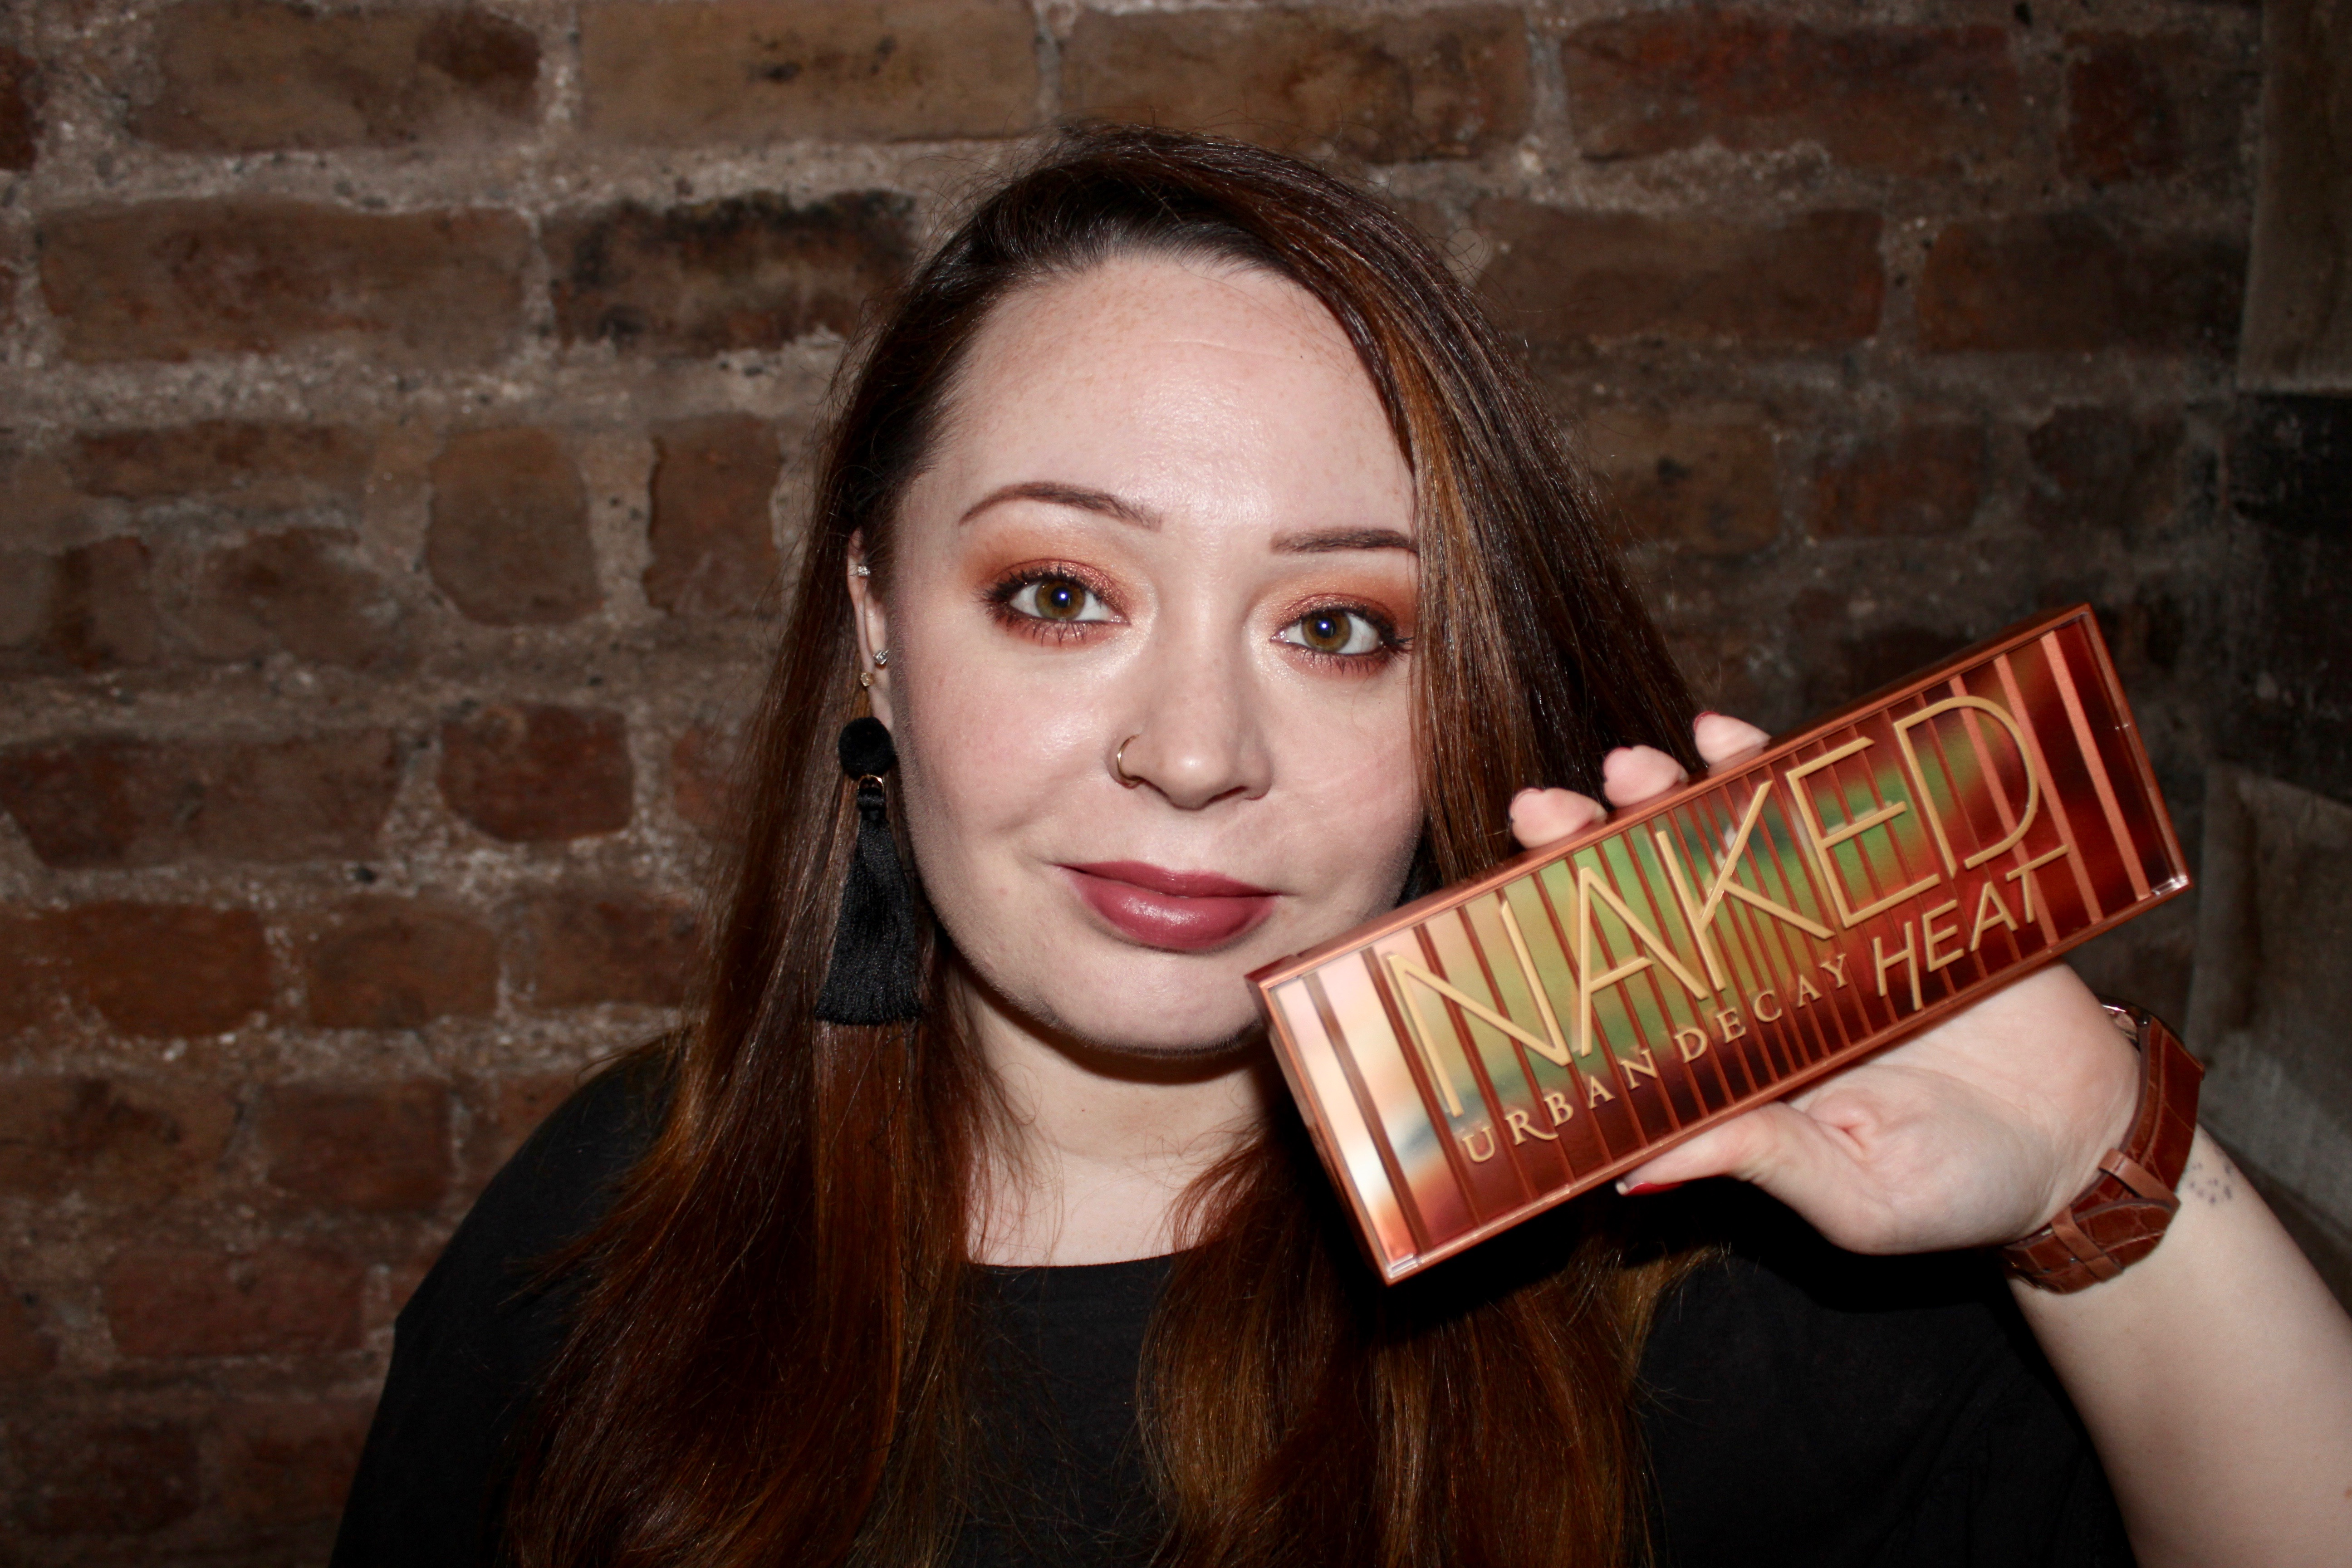 Urban Decay Naked Heat Makeup Look